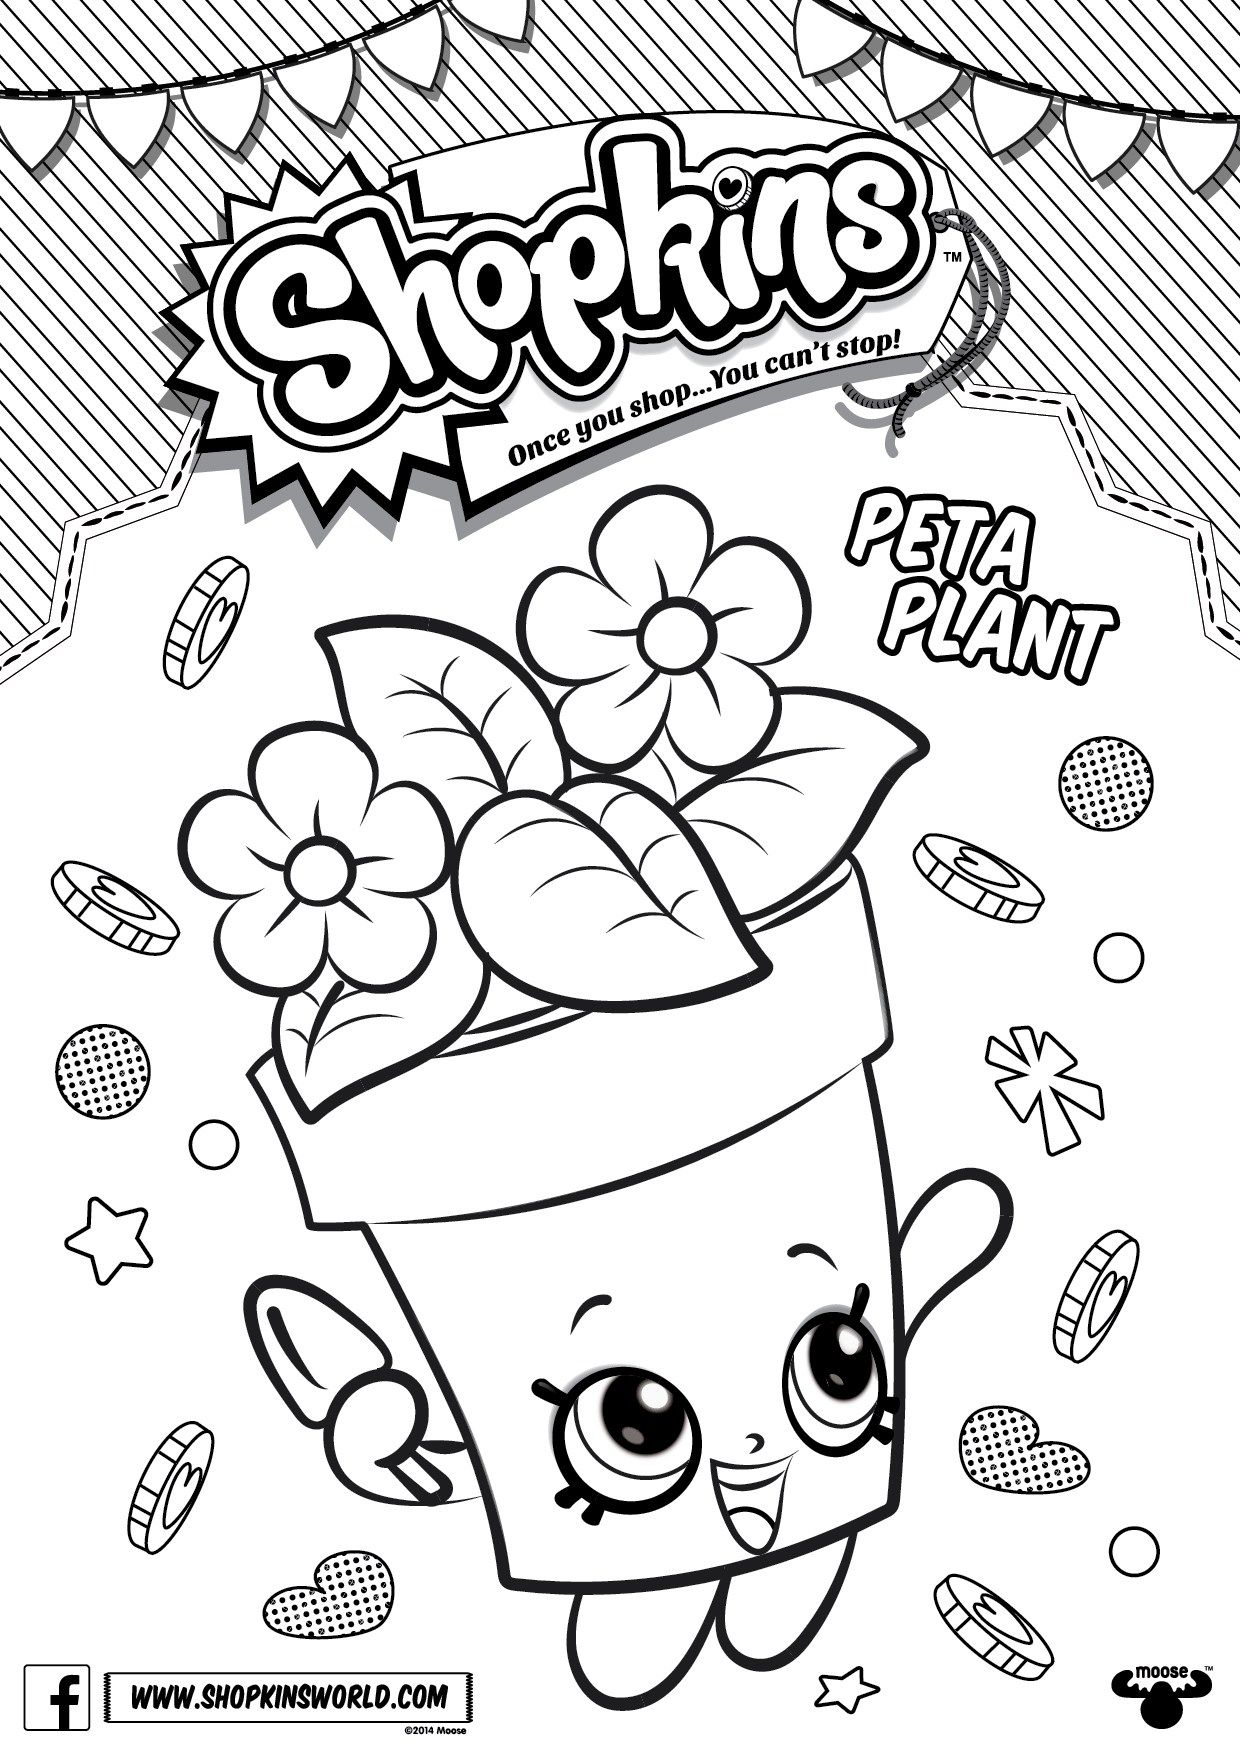 shopkins coloring pages season 4 peta plant printables